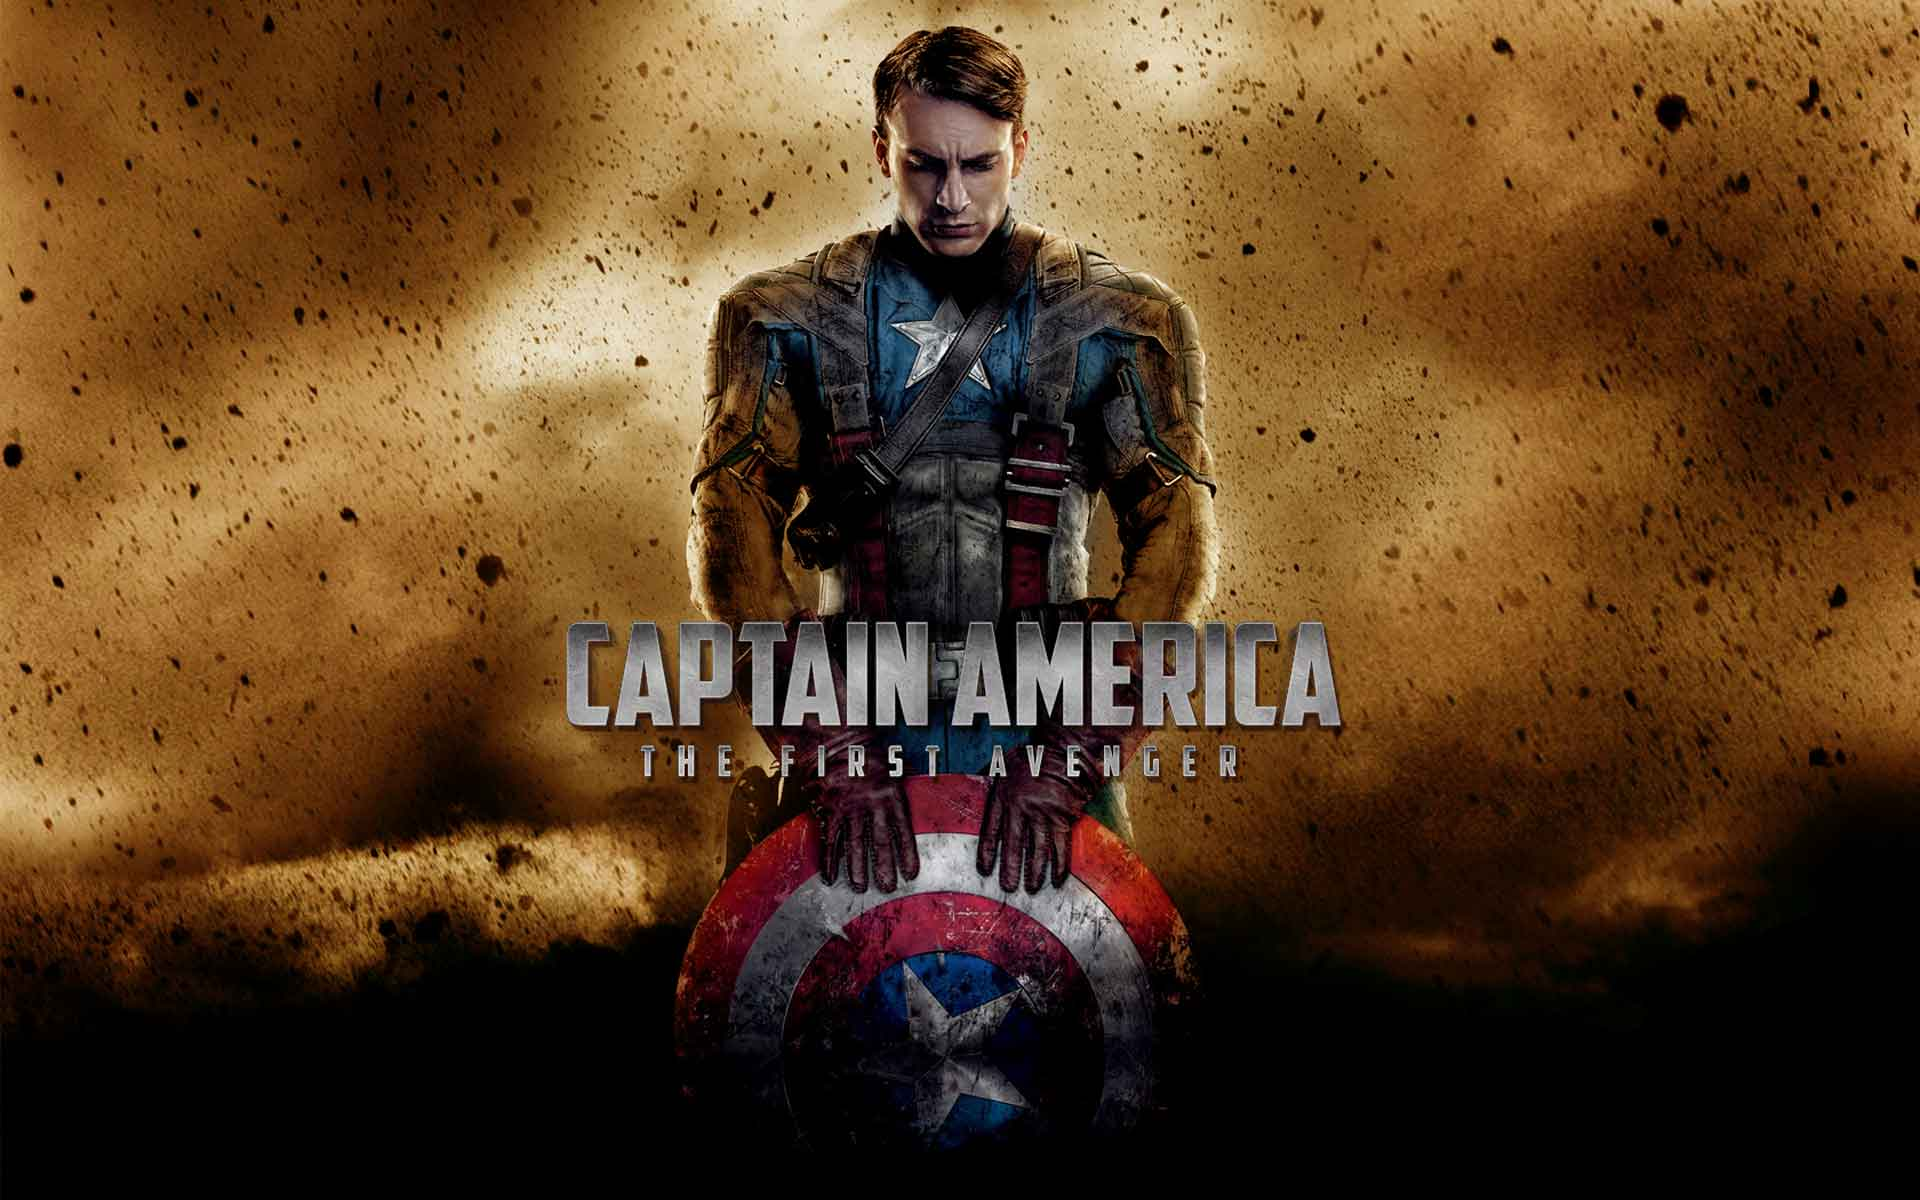 Captain America Wallpapers And Backgrounds W8themes - Captain America The First Avenger Background - HD Wallpaper